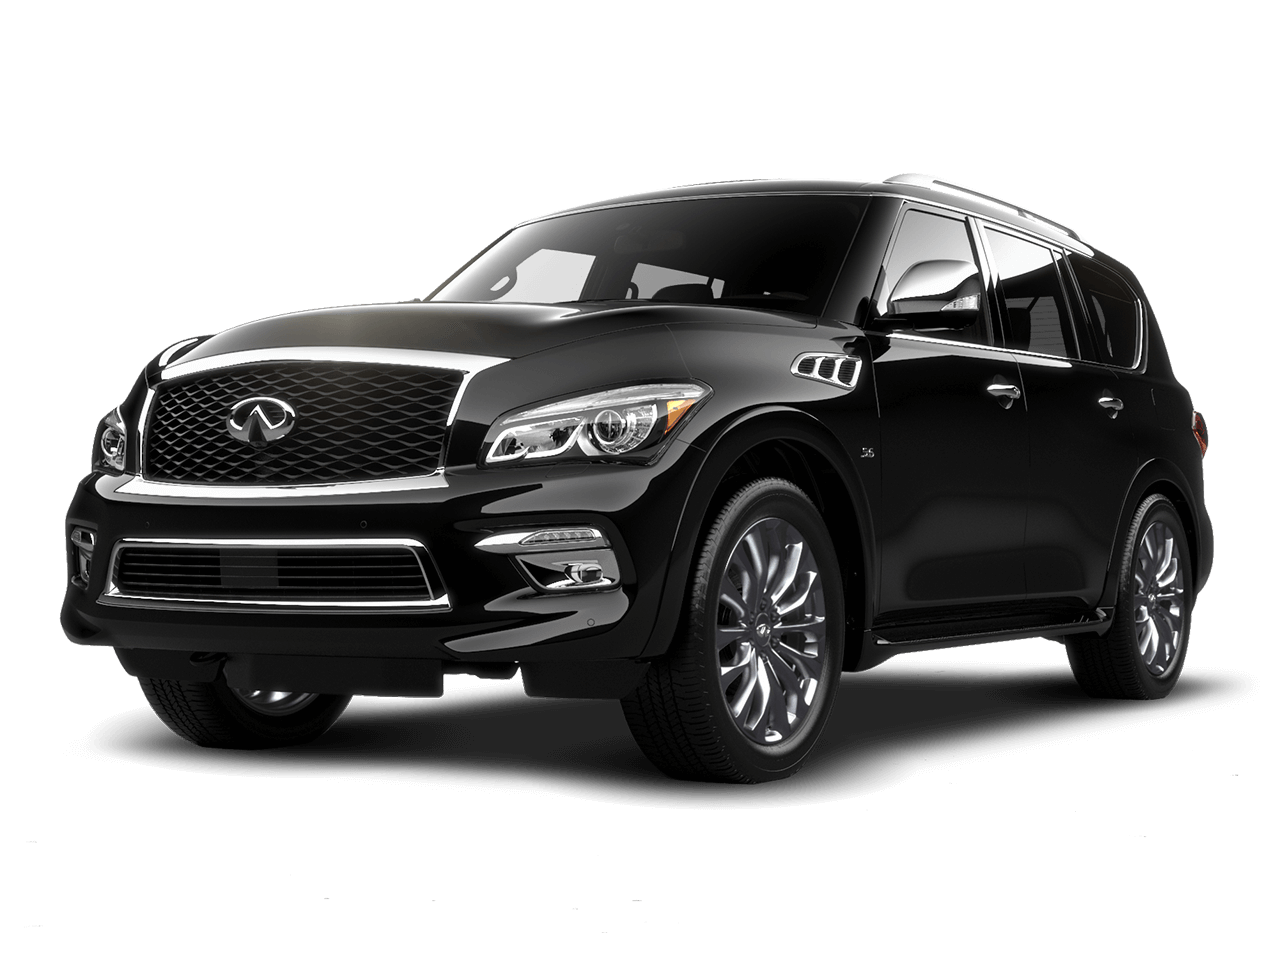 2017 infiniti qx80 dealer serving denver infiniti of denver. Black Bedroom Furniture Sets. Home Design Ideas